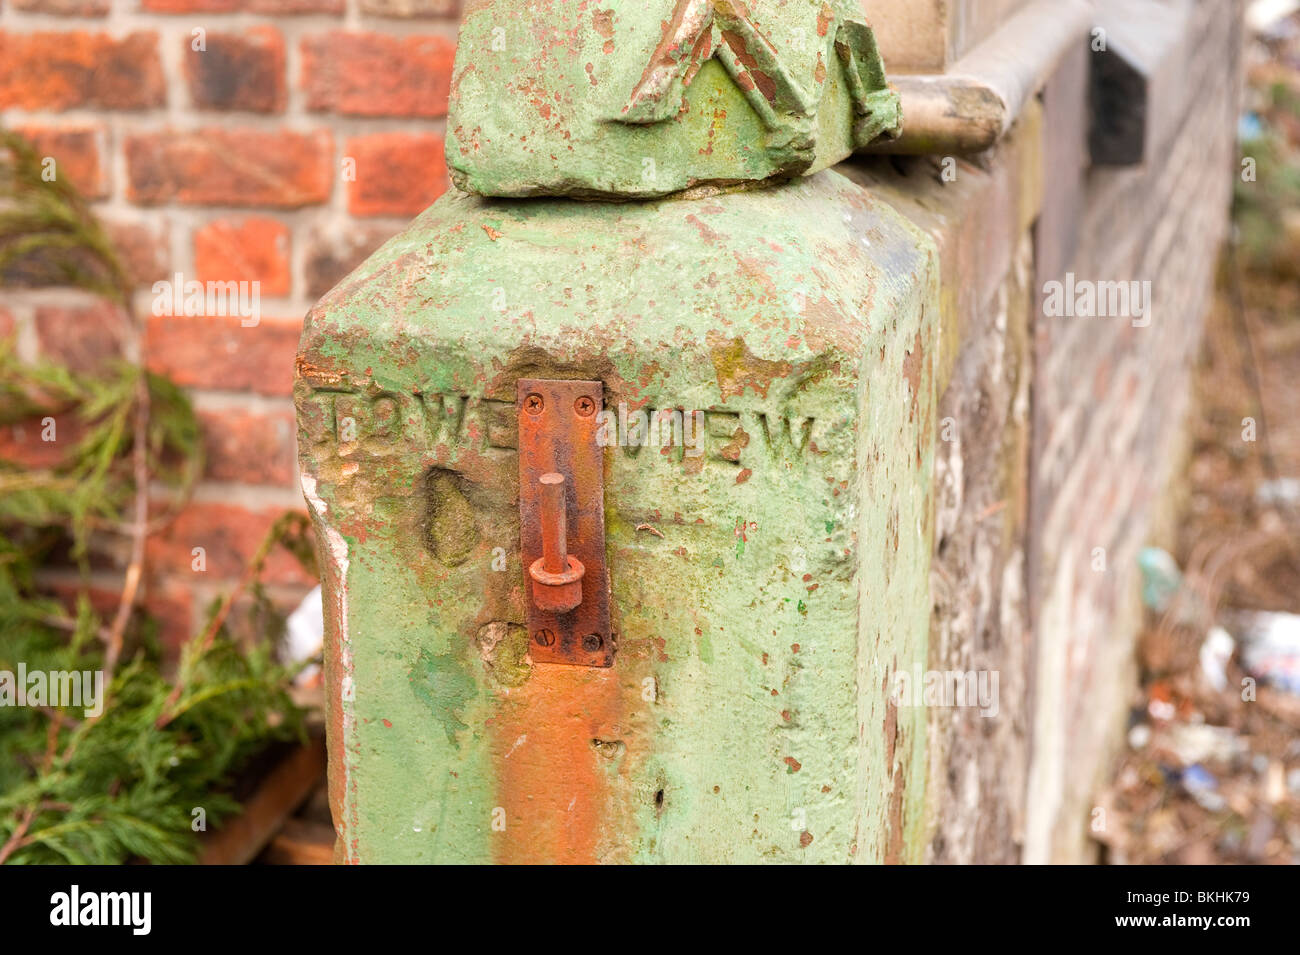 Sandstone gatepost with Tower View carved into it - Stock Image